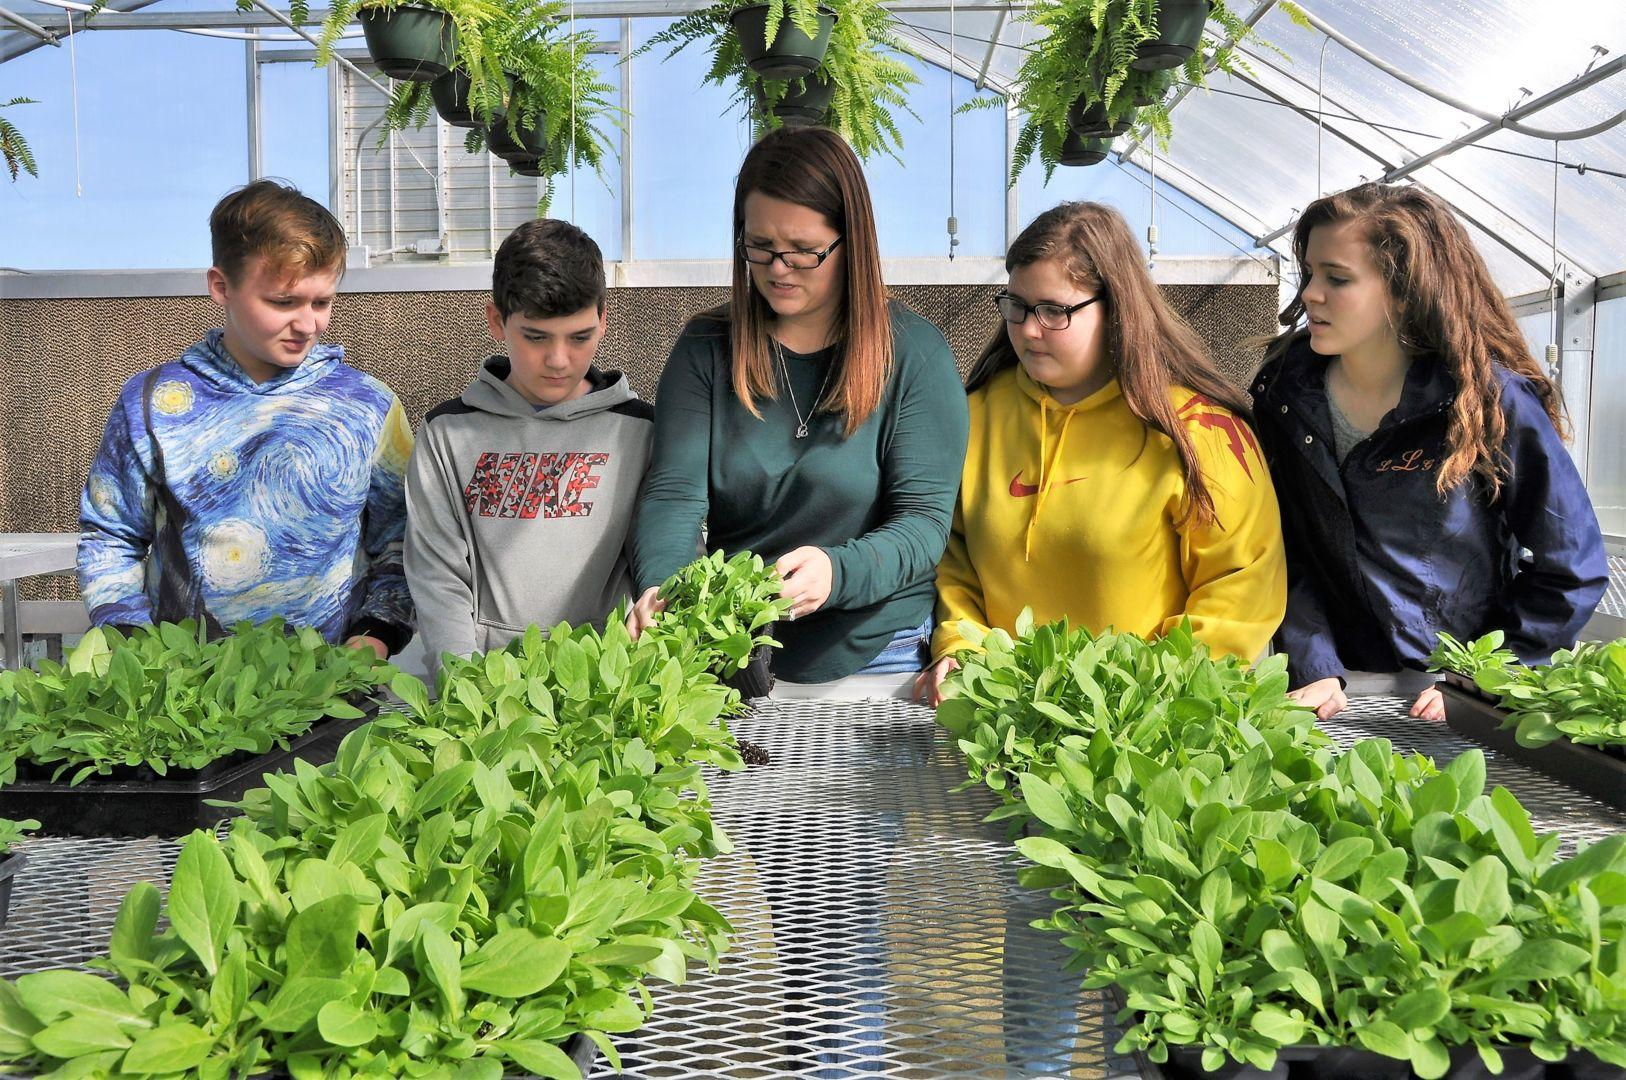 Serving also as a Future Farmers of America (FFA) advisor, Christina Sanders provides hands-on training for her students in the on-campus greenhouse.